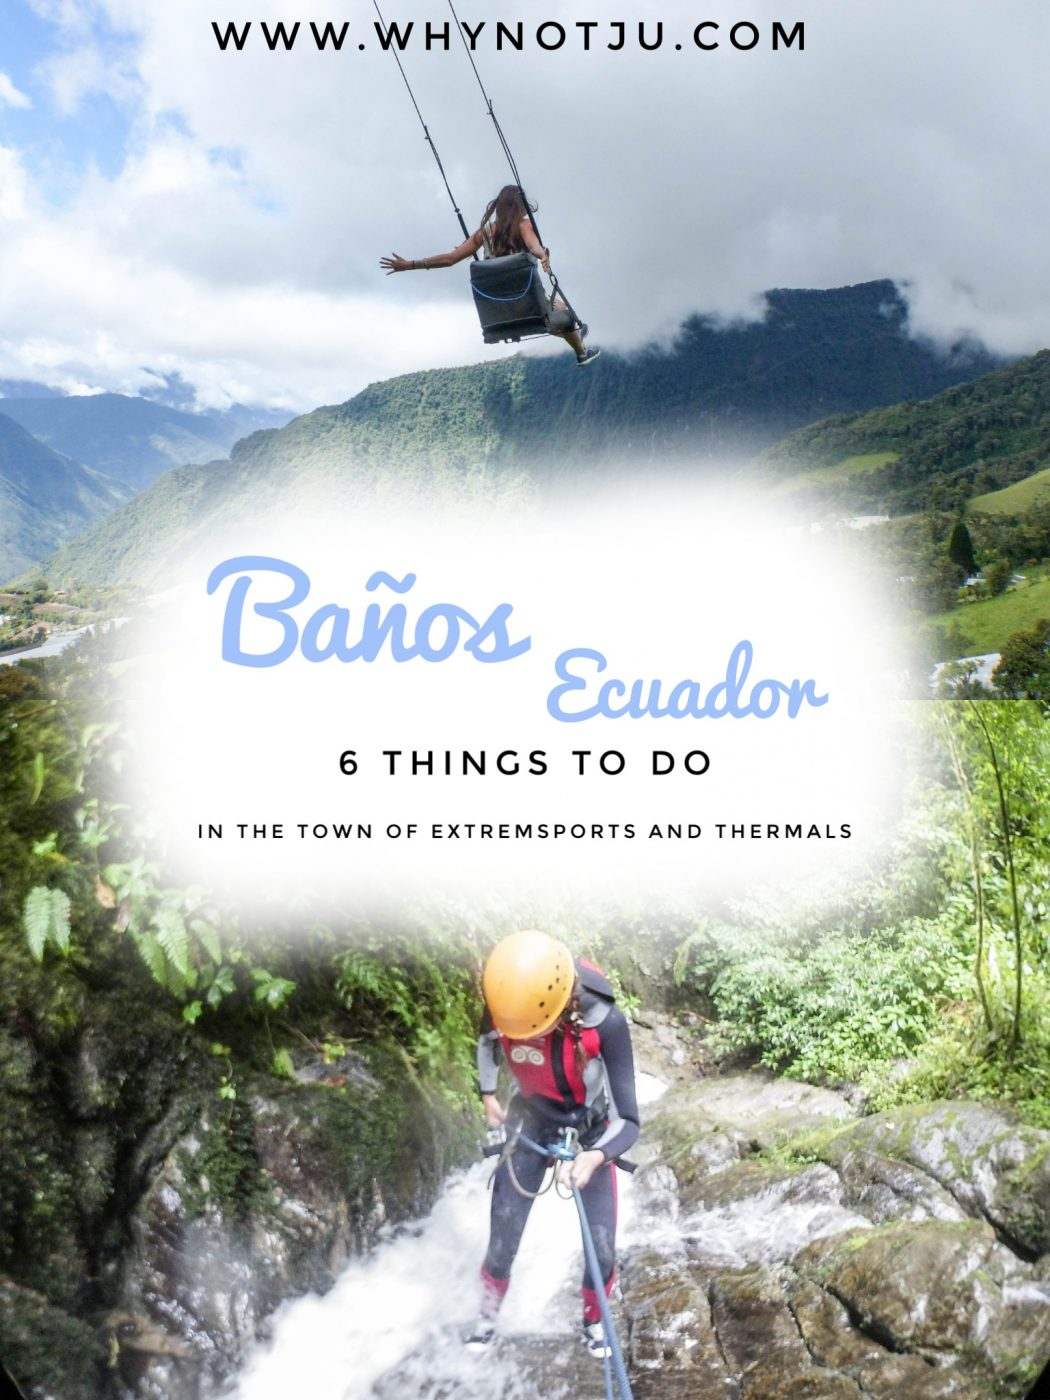 Casa del Arbol Ecuador Pinterest Things to do in Baños - A short guide to things to do in Baños. From checking out waterfalls, canopying and swinging on a swing with wonderful view over the area.